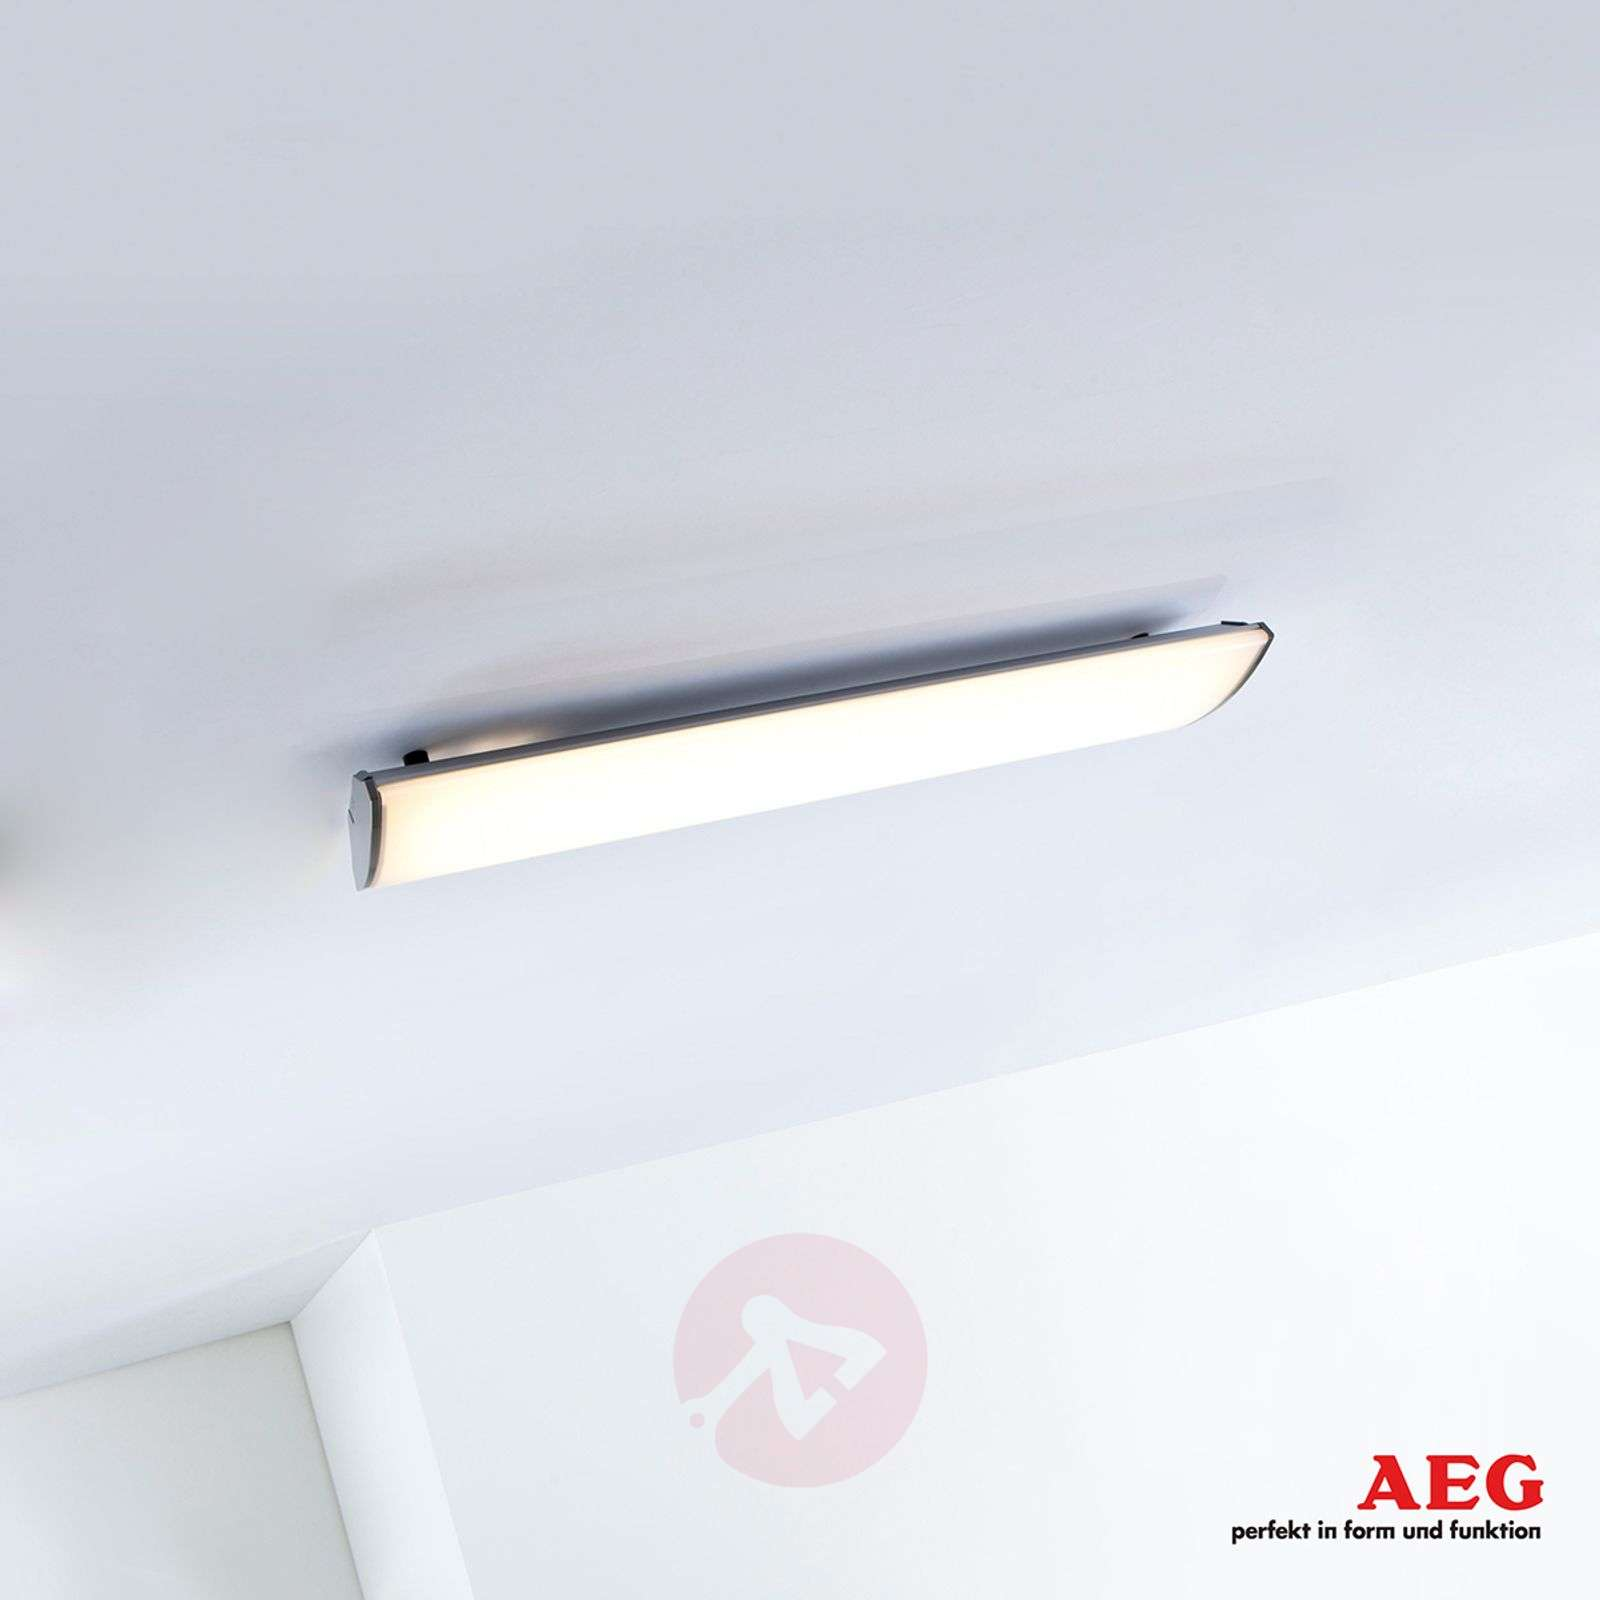 Led office an led ceiling light by aeg 25 w lights led office an led ceiling light by aeg 25 w 3057010 06 mozeypictures Gallery